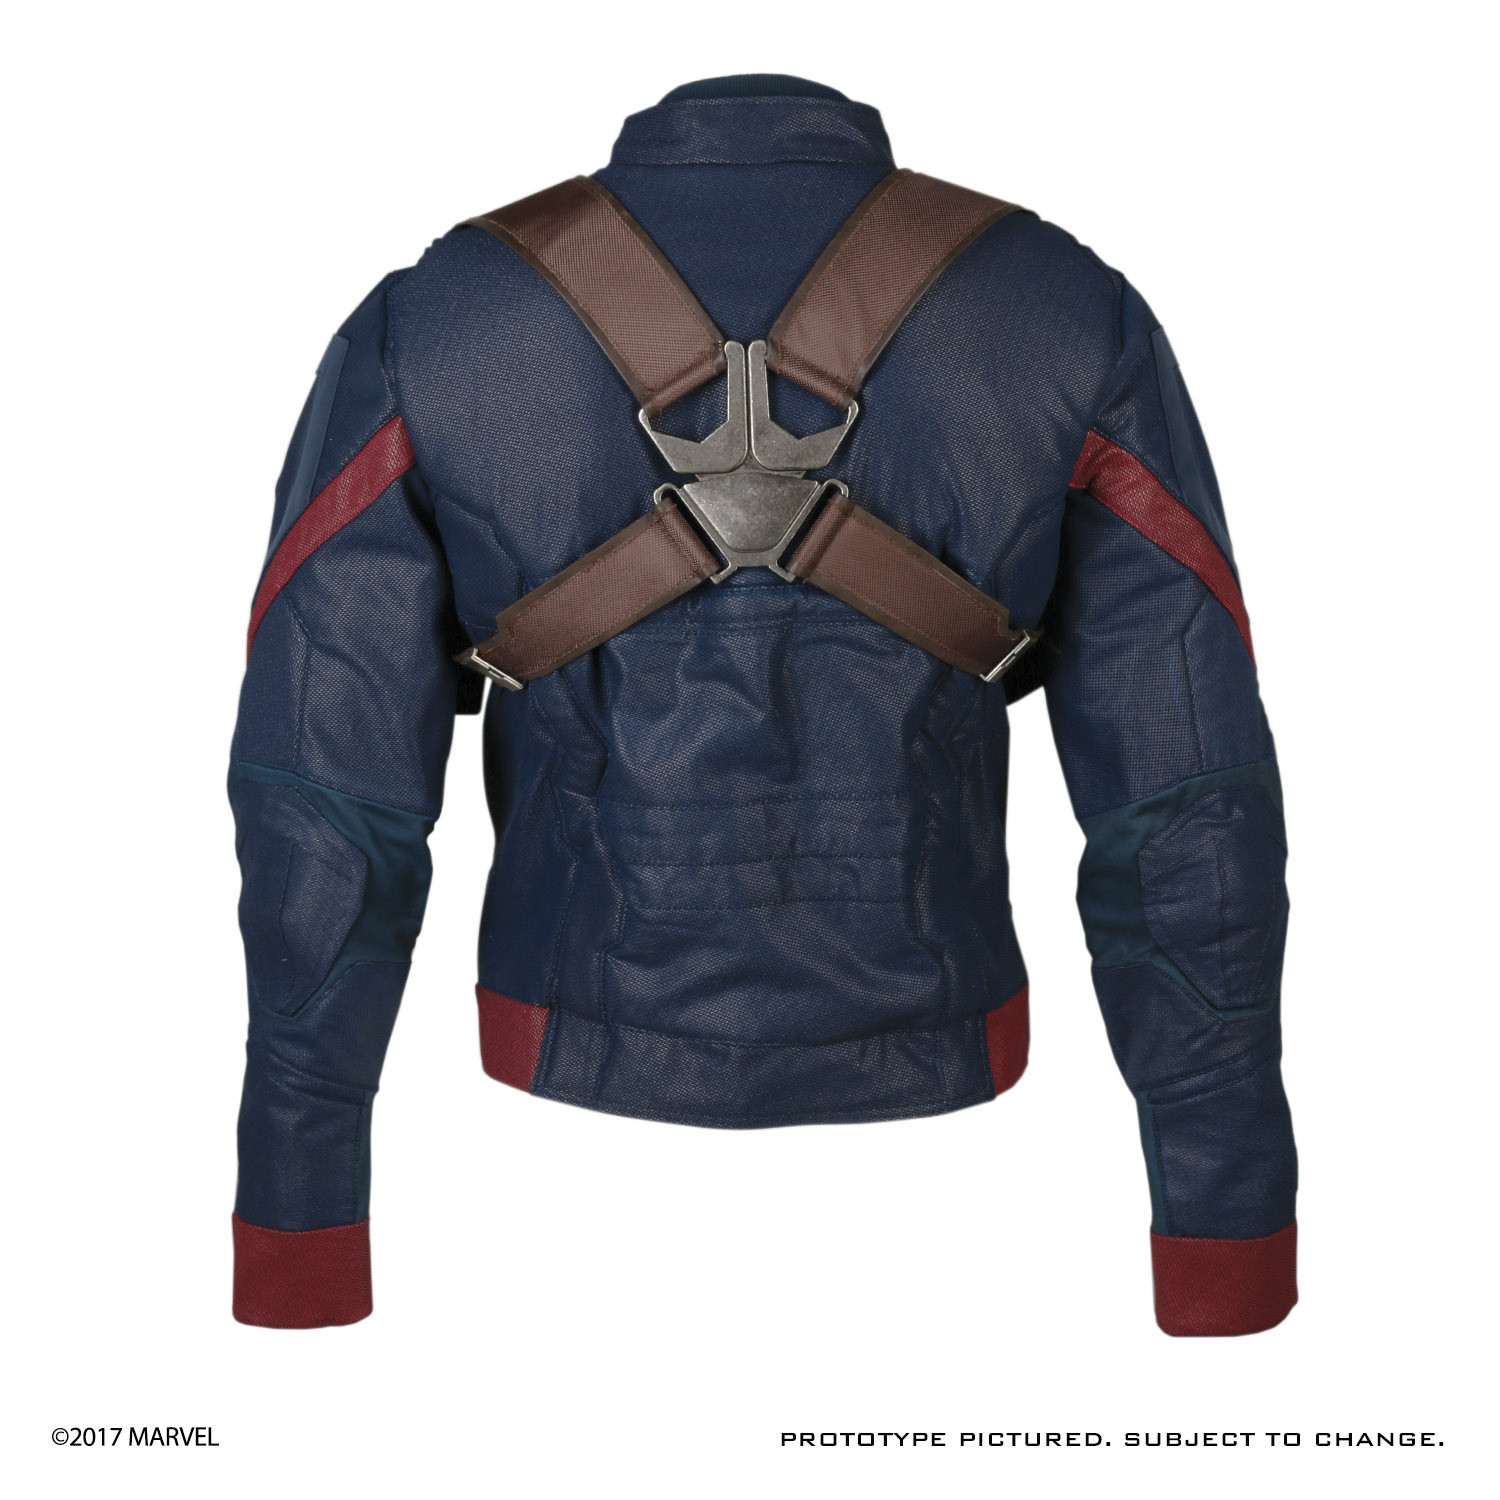 100712 22 5 Dually Wheels 3 as well Captain America Civil War Inspired Costume Jacket together with News furthermore Teacher Appreciation furthermore Armor Guide. on soldier civil war shoulder scale